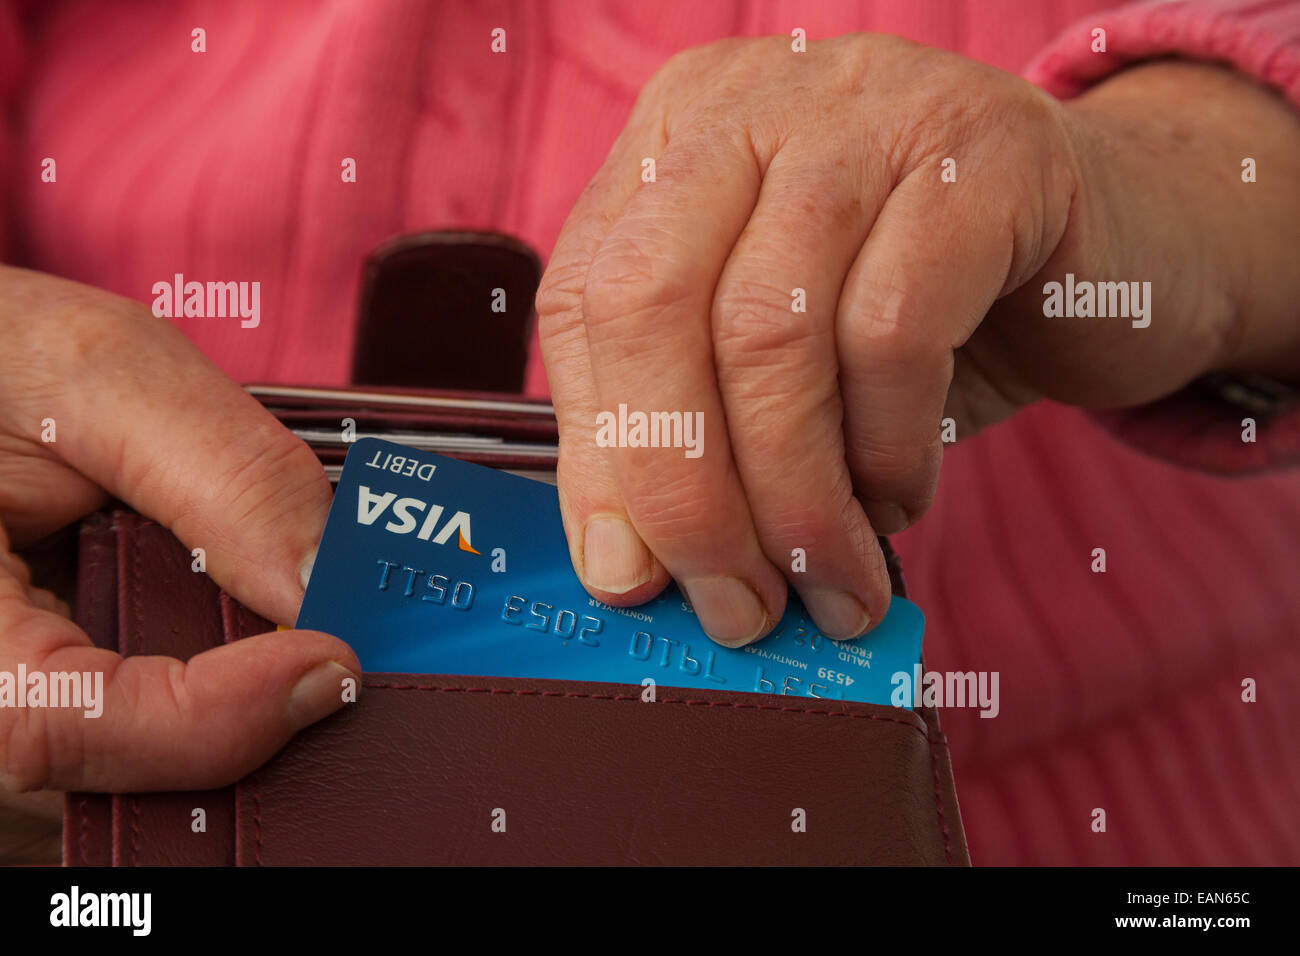 Elderly woman taking a Visa debit card out of a wallet to make a card purchase - Stock Image